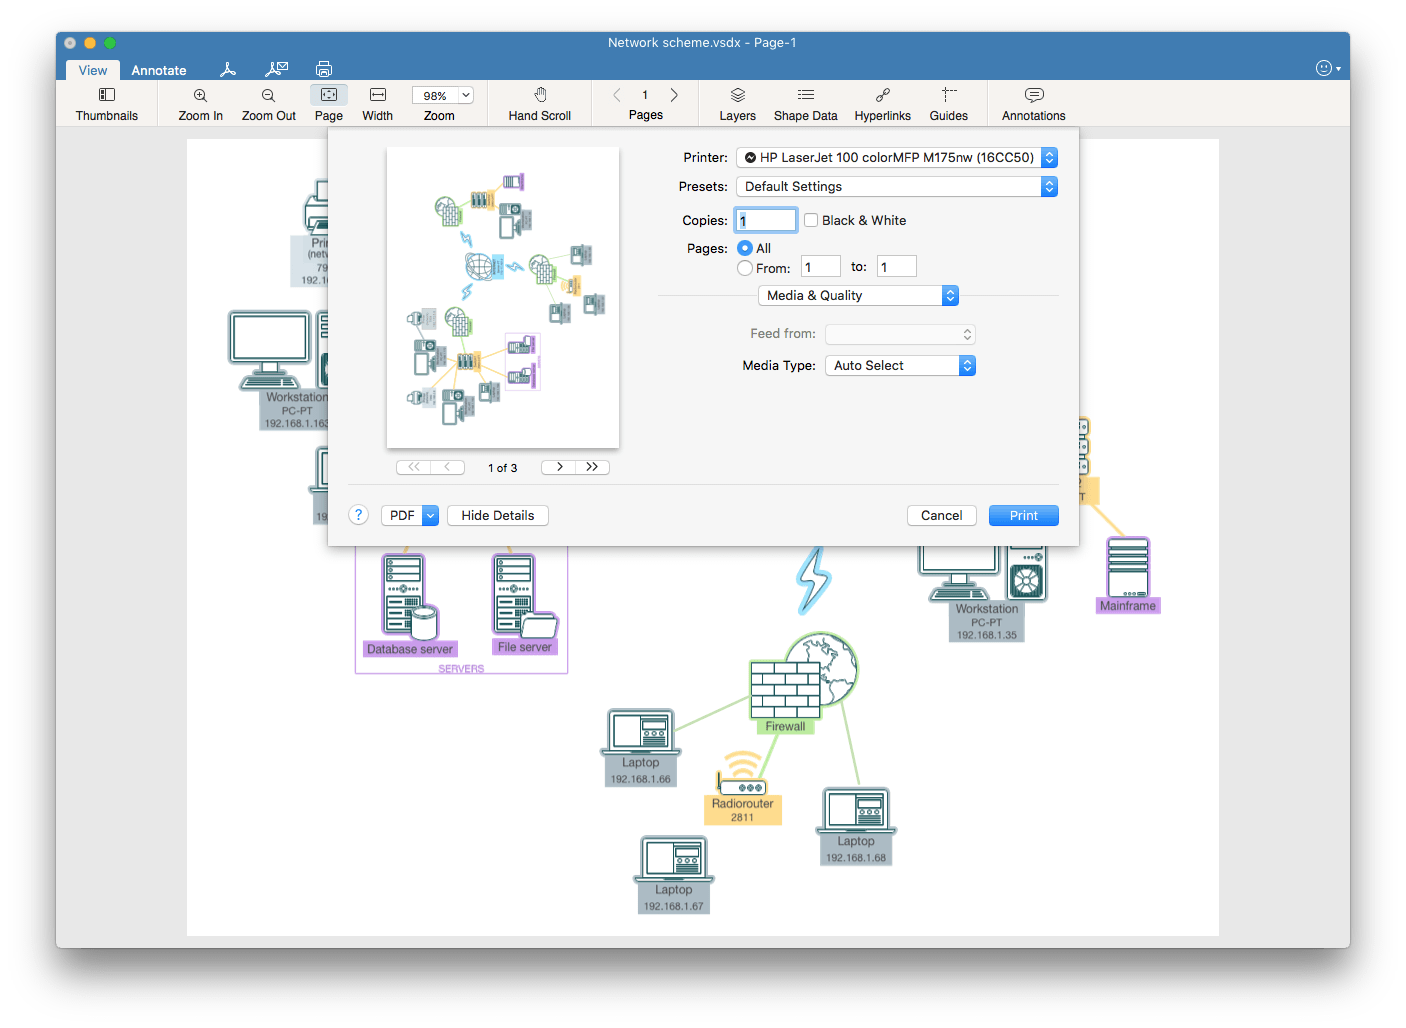 print visio drawings on Mac